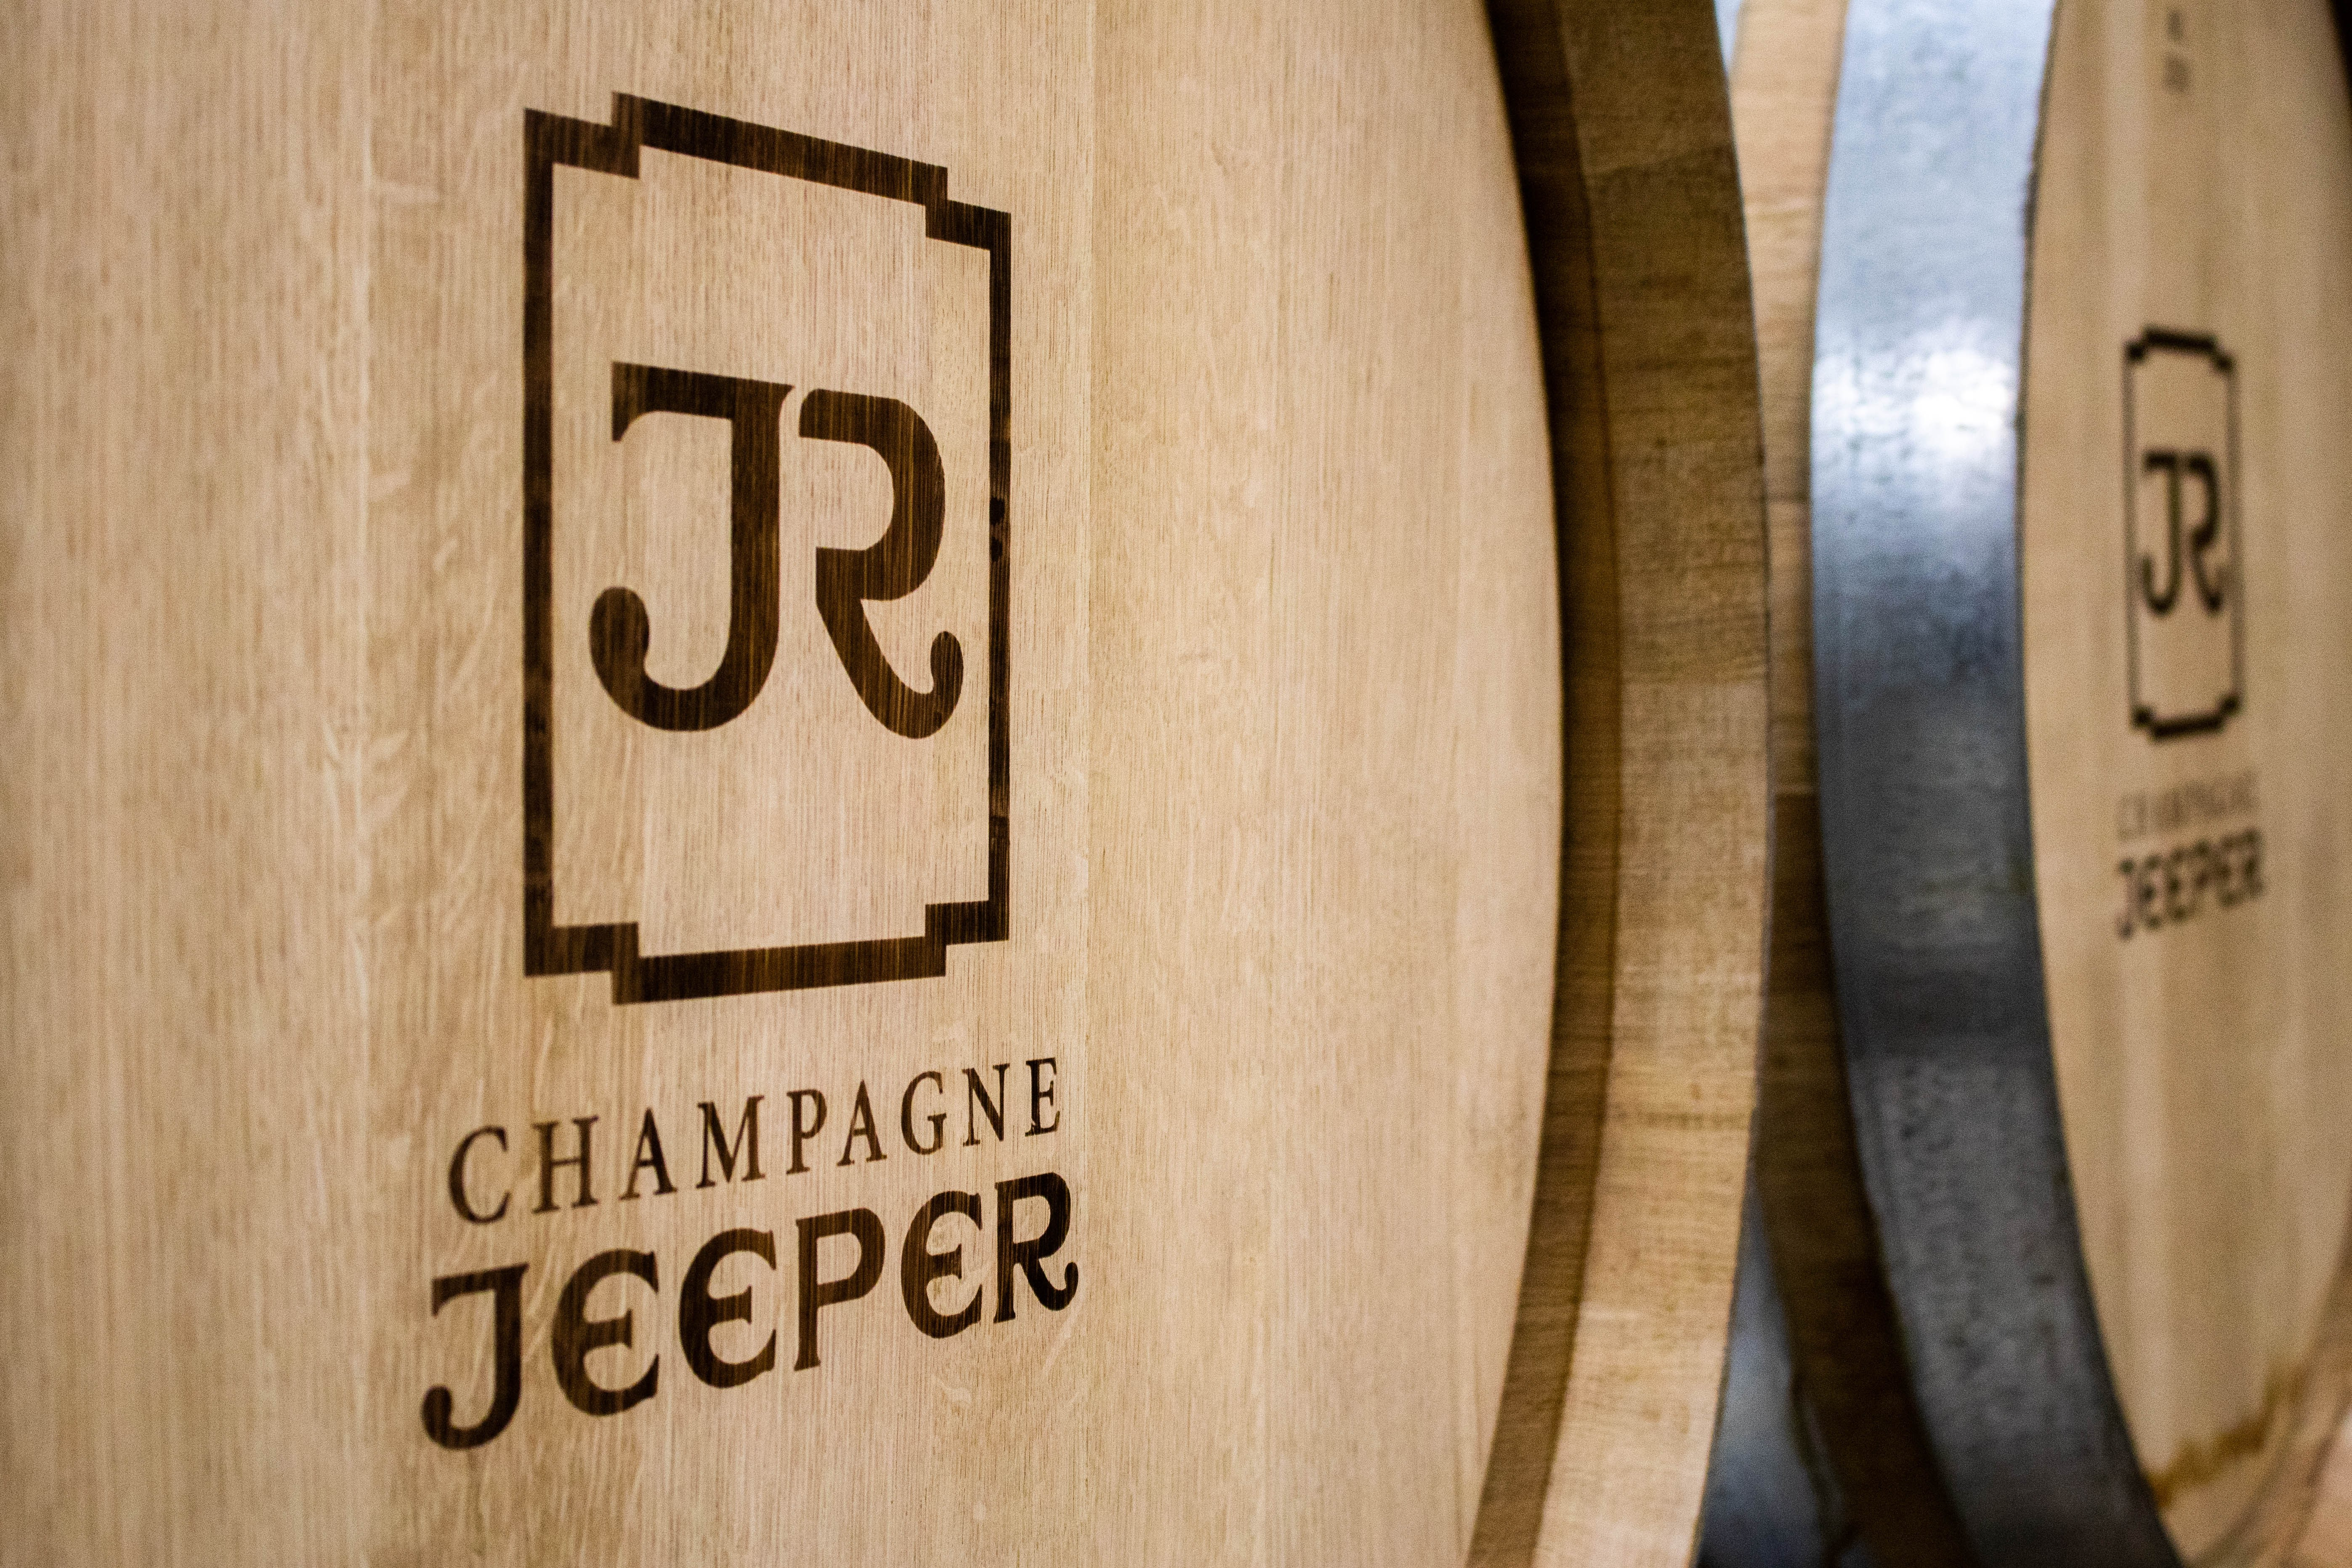 champagne-jeeper-a-faverolles-et-coemy